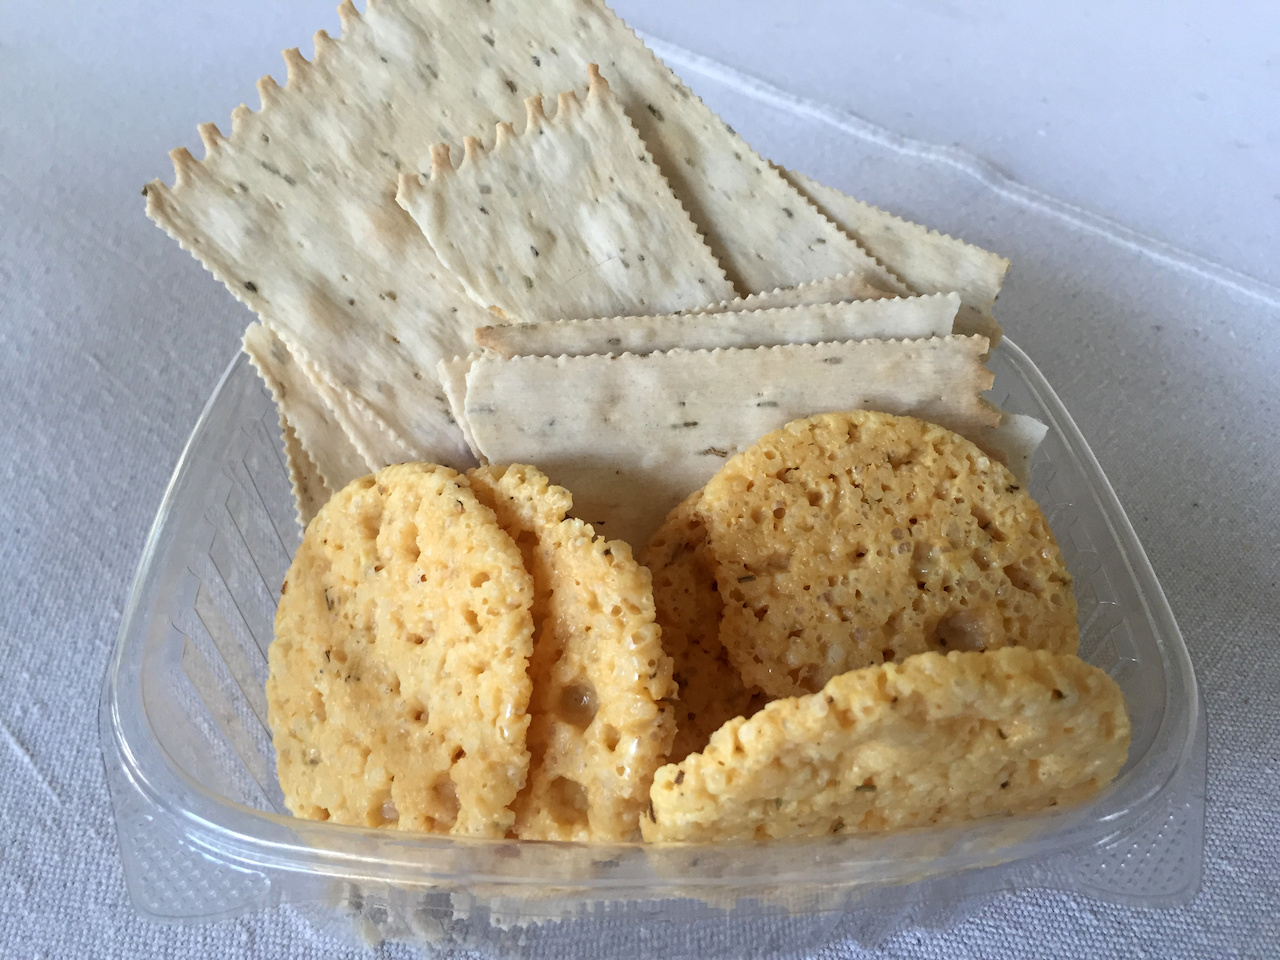 Rosemary crackers and cheese crisps, $4.99 each at Lucchesi's Pasta & Ravioli Company.